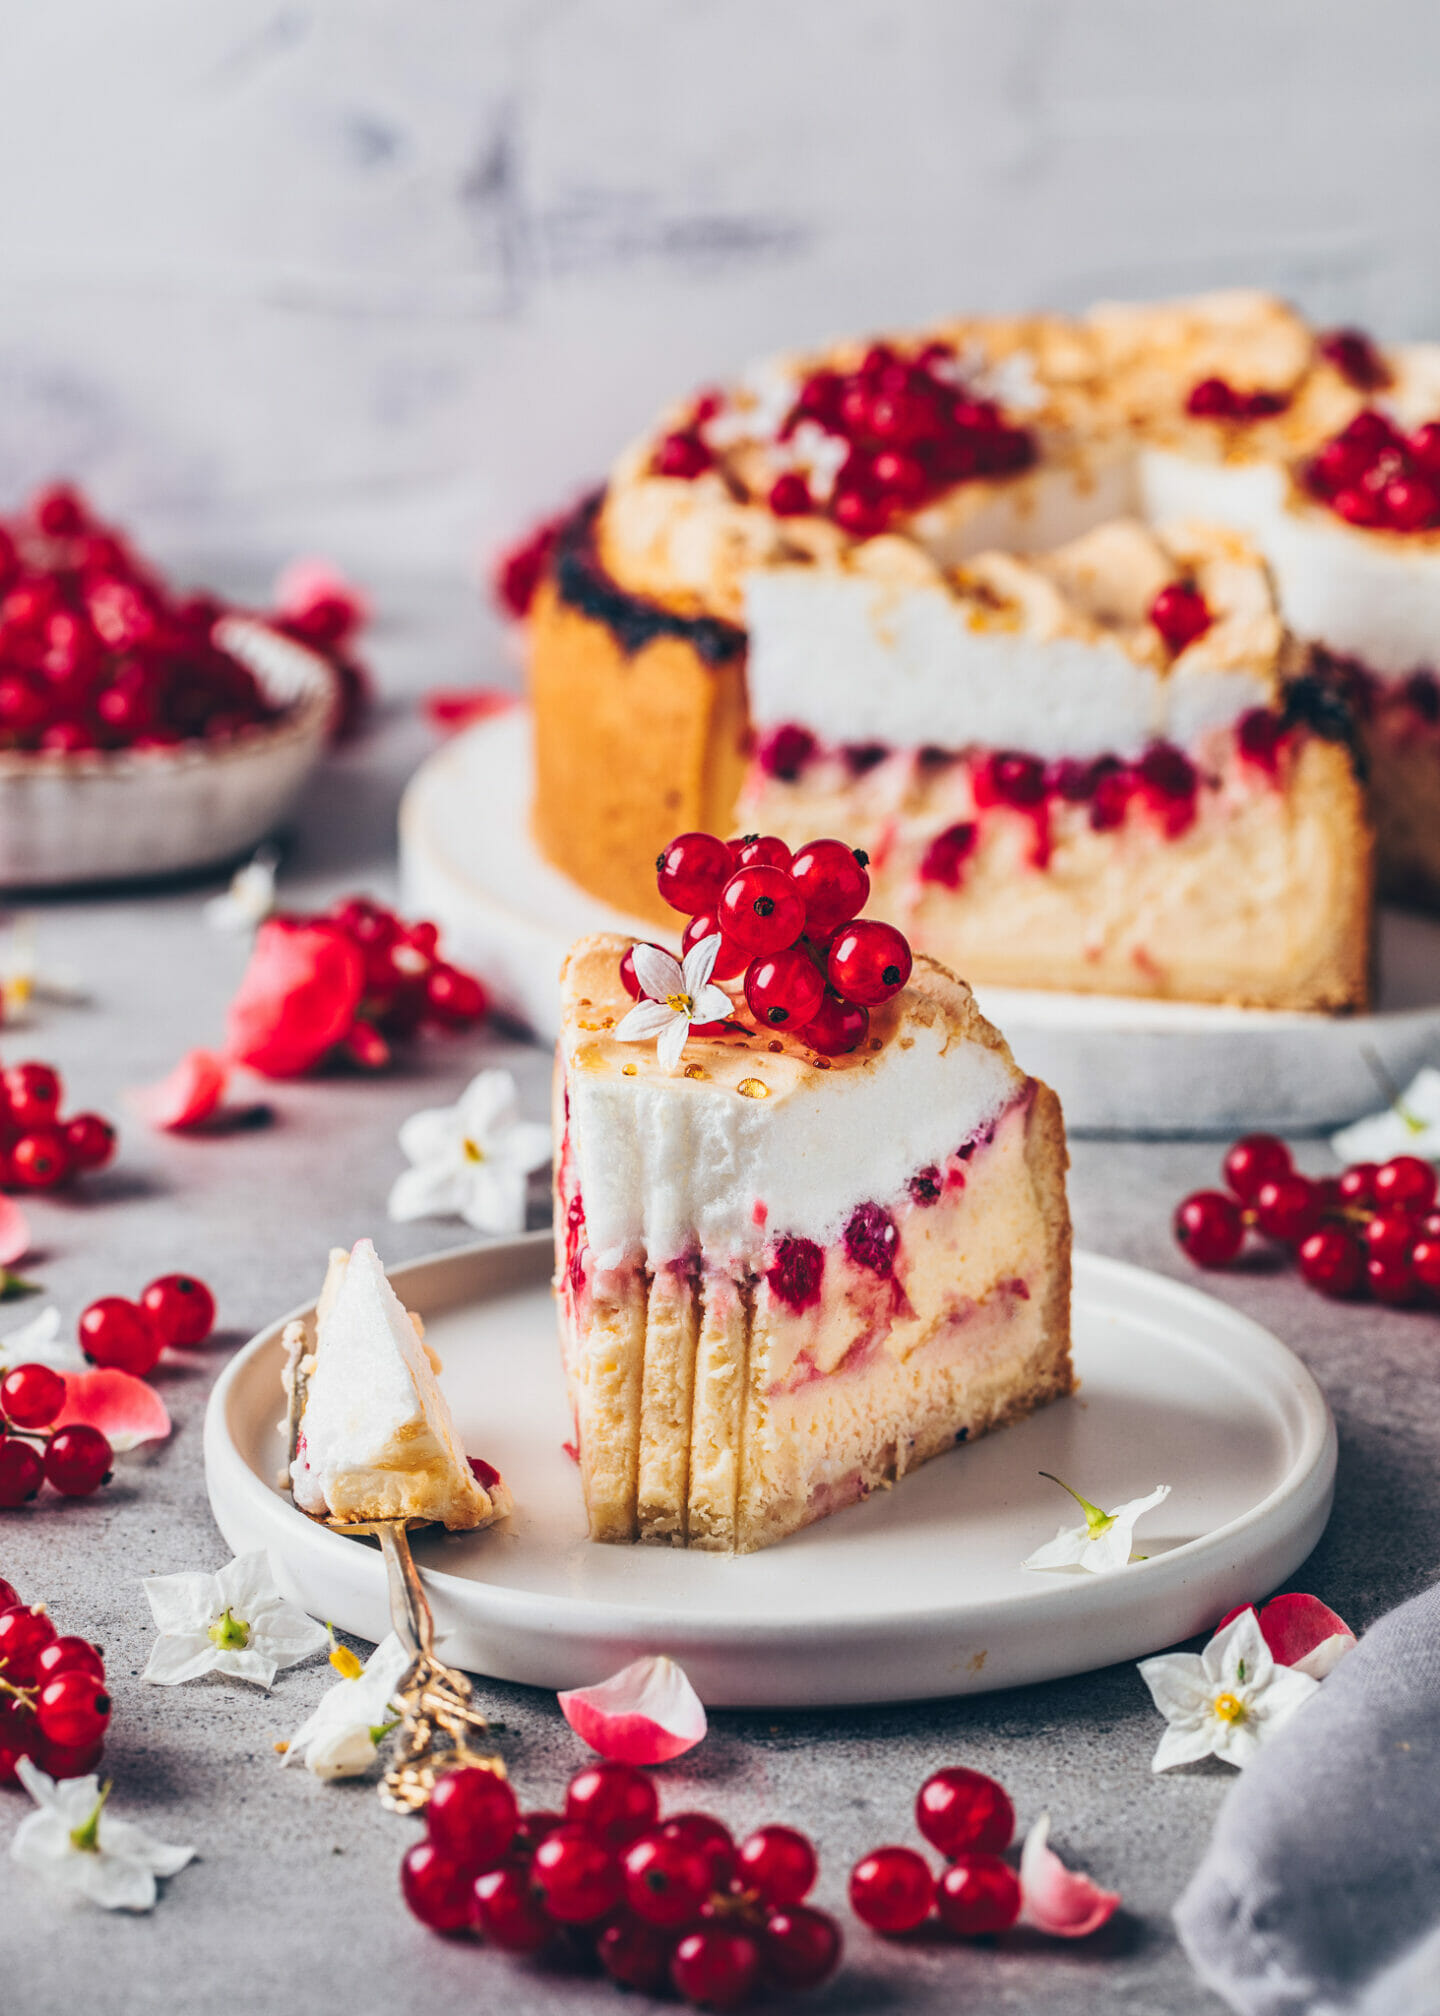 Vegan Meringue Cheesecake with Berries